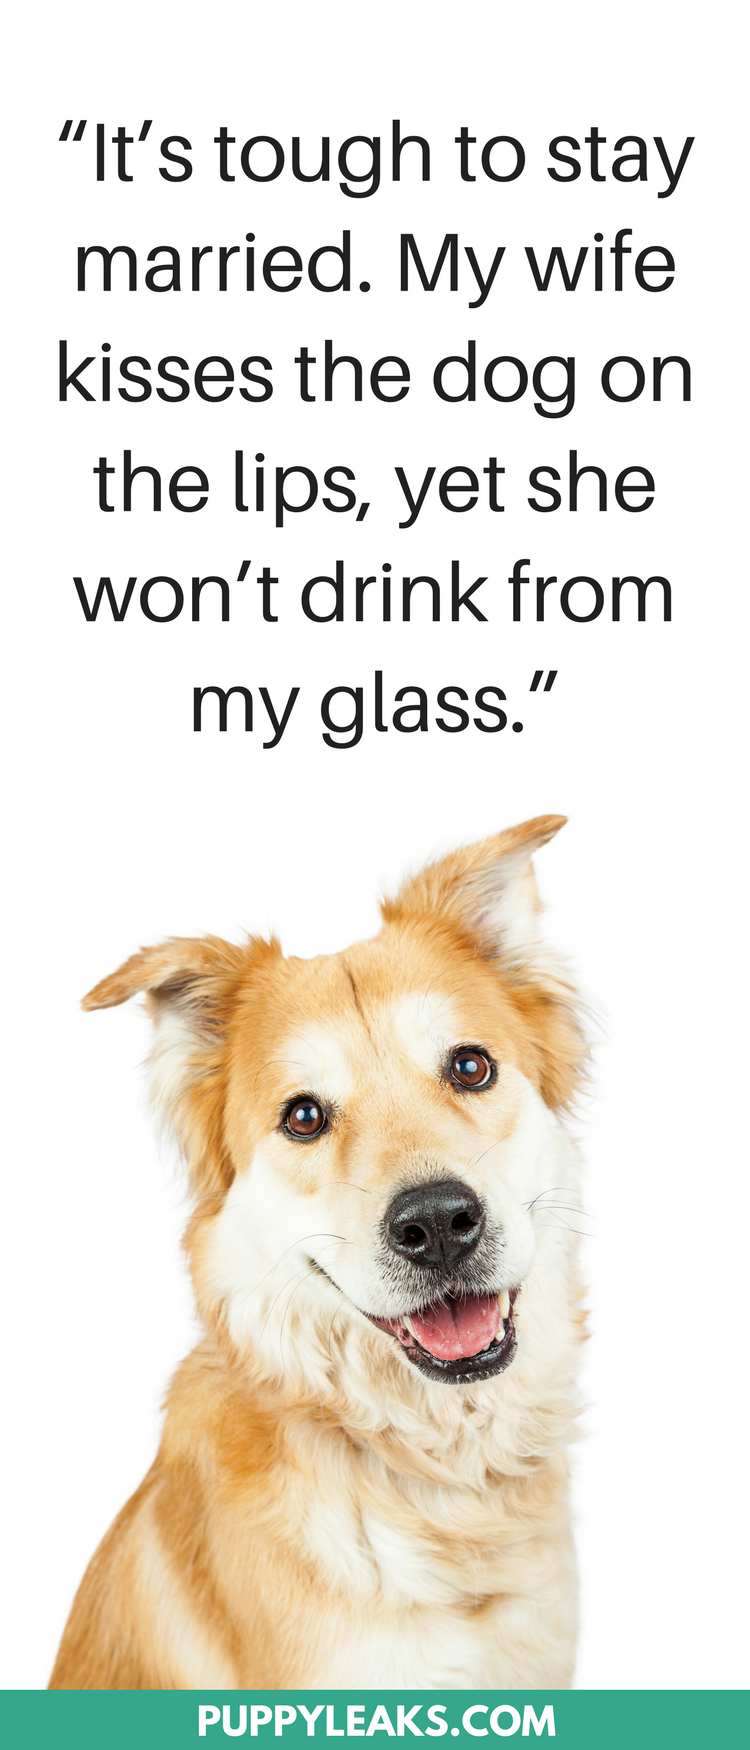 30 Cute & Funny Dog Quotes #funnydogs #dogs #funnyquotes #dogquotes